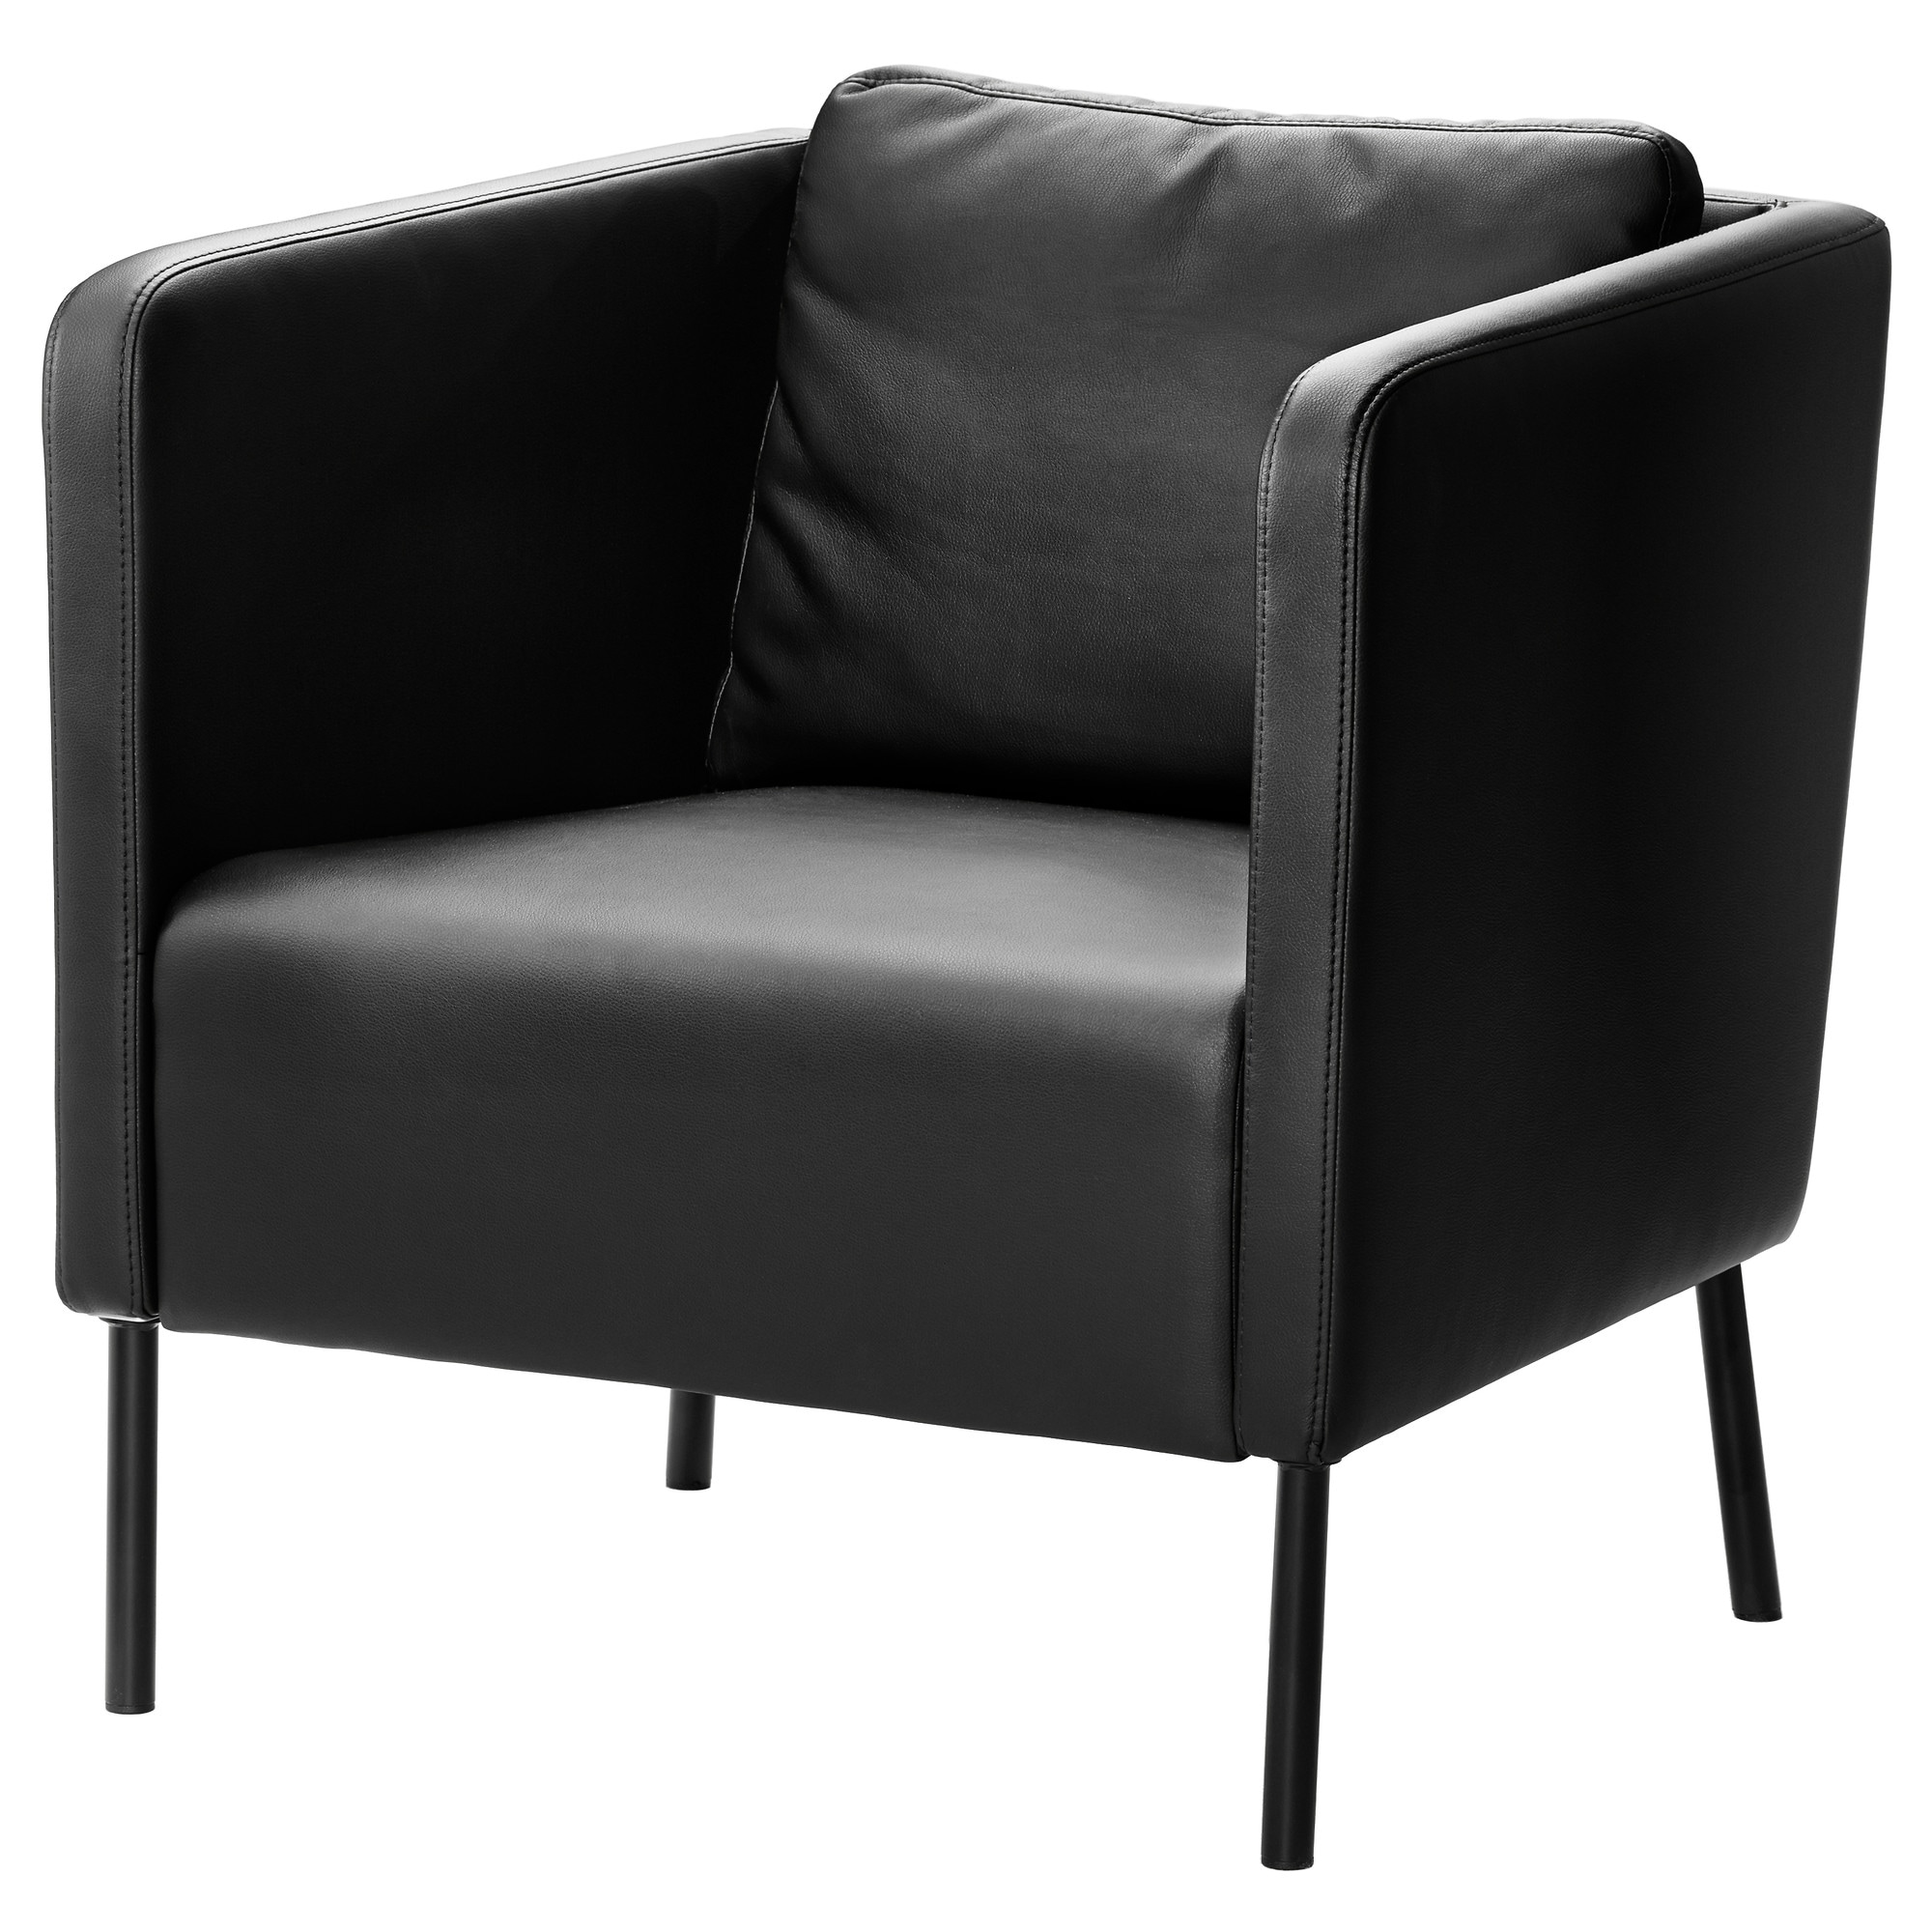 black furniture ikea. Black Furniture Ikea E